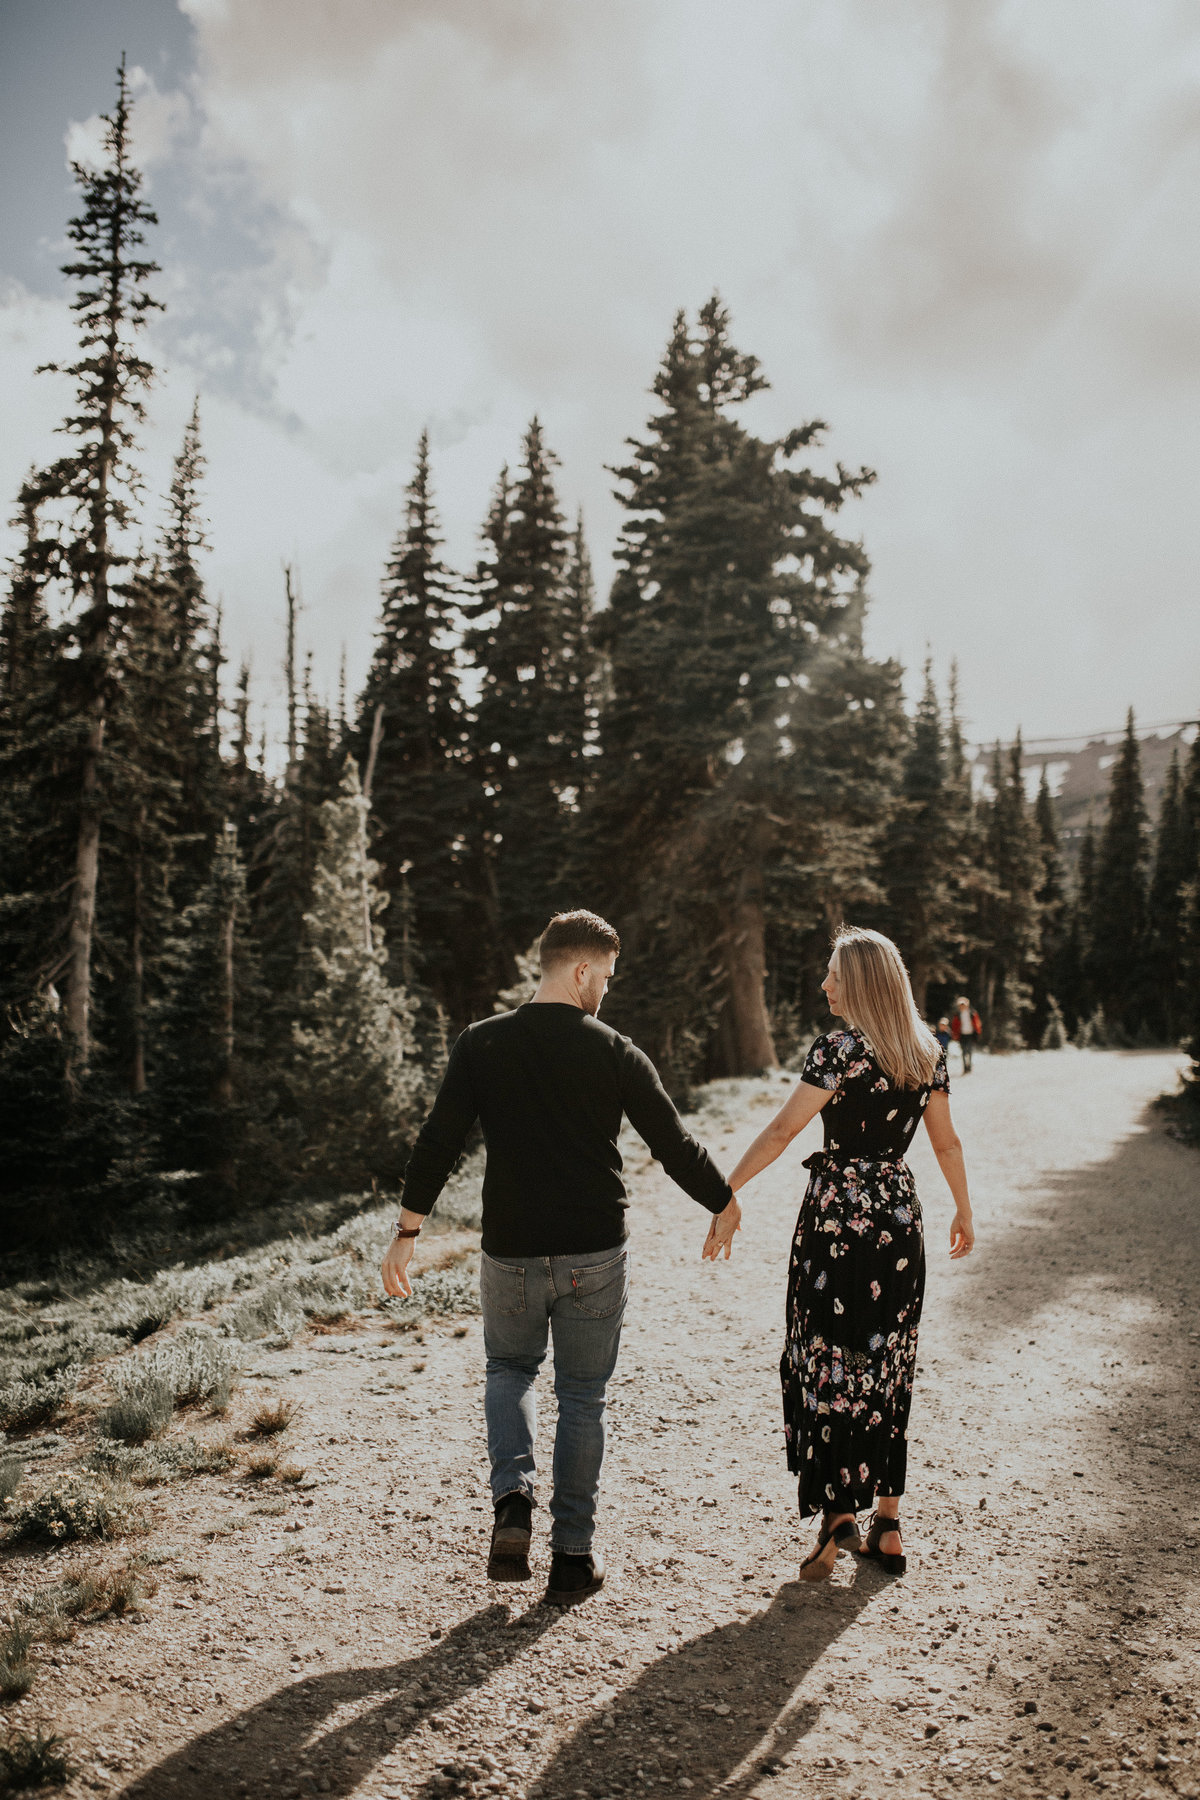 Marnie_Cornell_Photography_Engagement_Mount_Rainier_RK-18